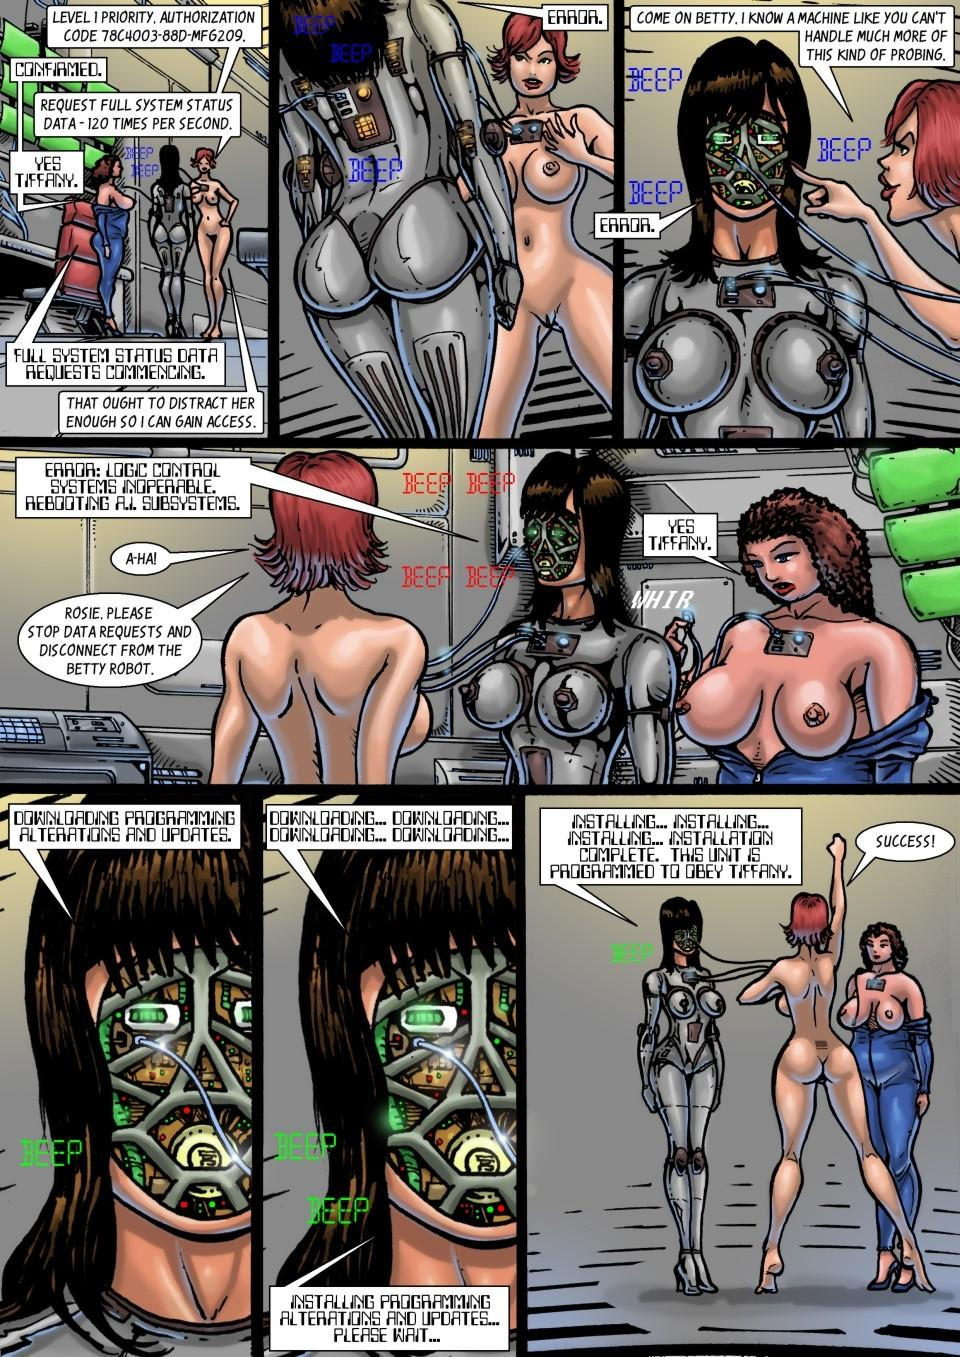 Rubble reccomend Aliens vs predator cartoon porno